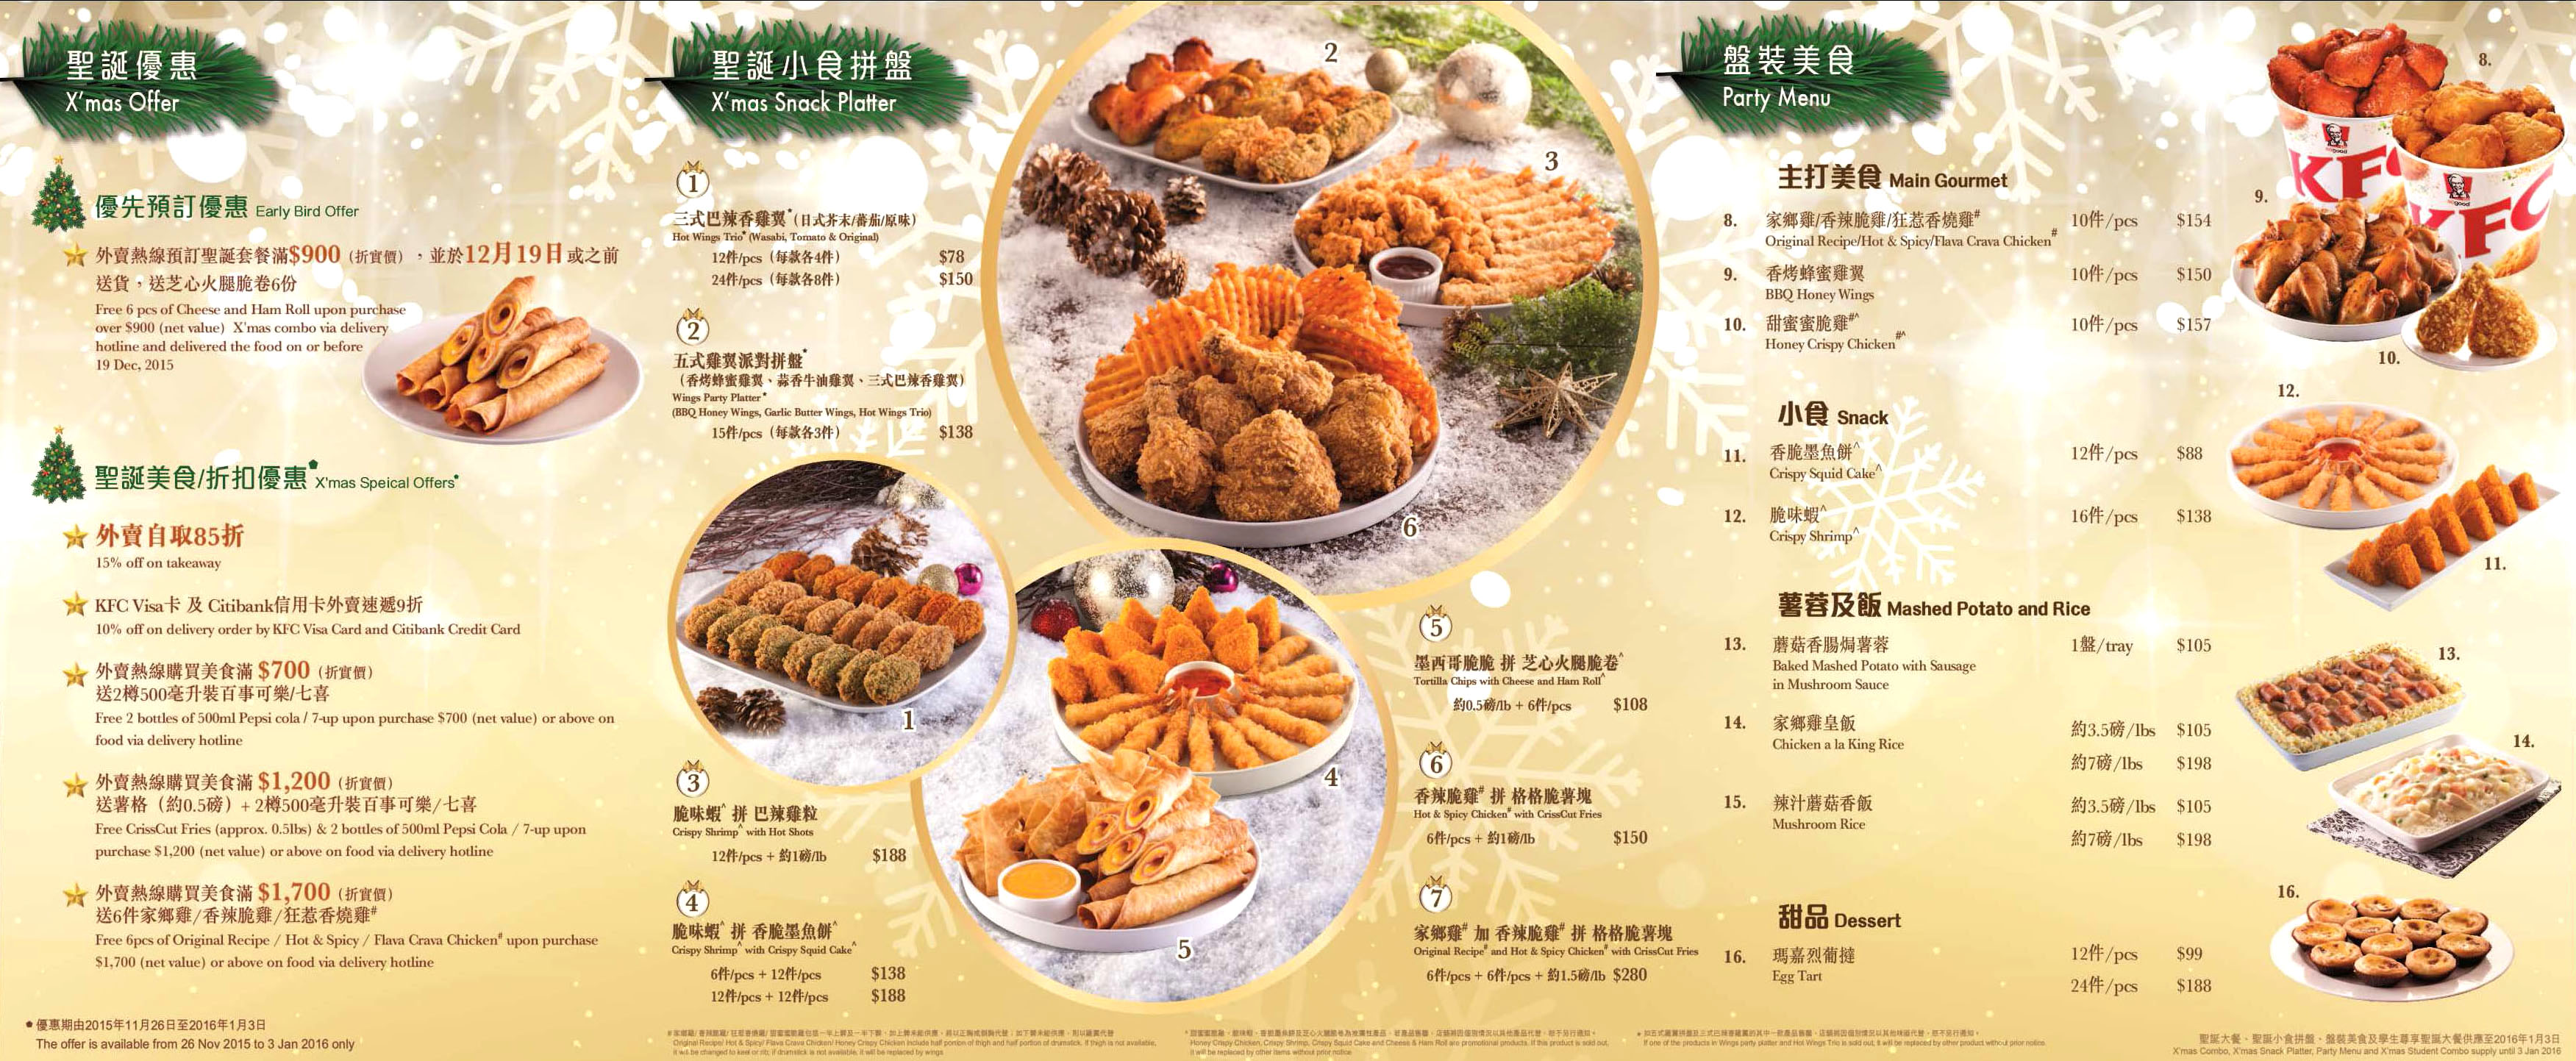 肯德基餐廳電話外賣速遞服務 Kfc Menu Delivery Hk Prices Fast Food Take